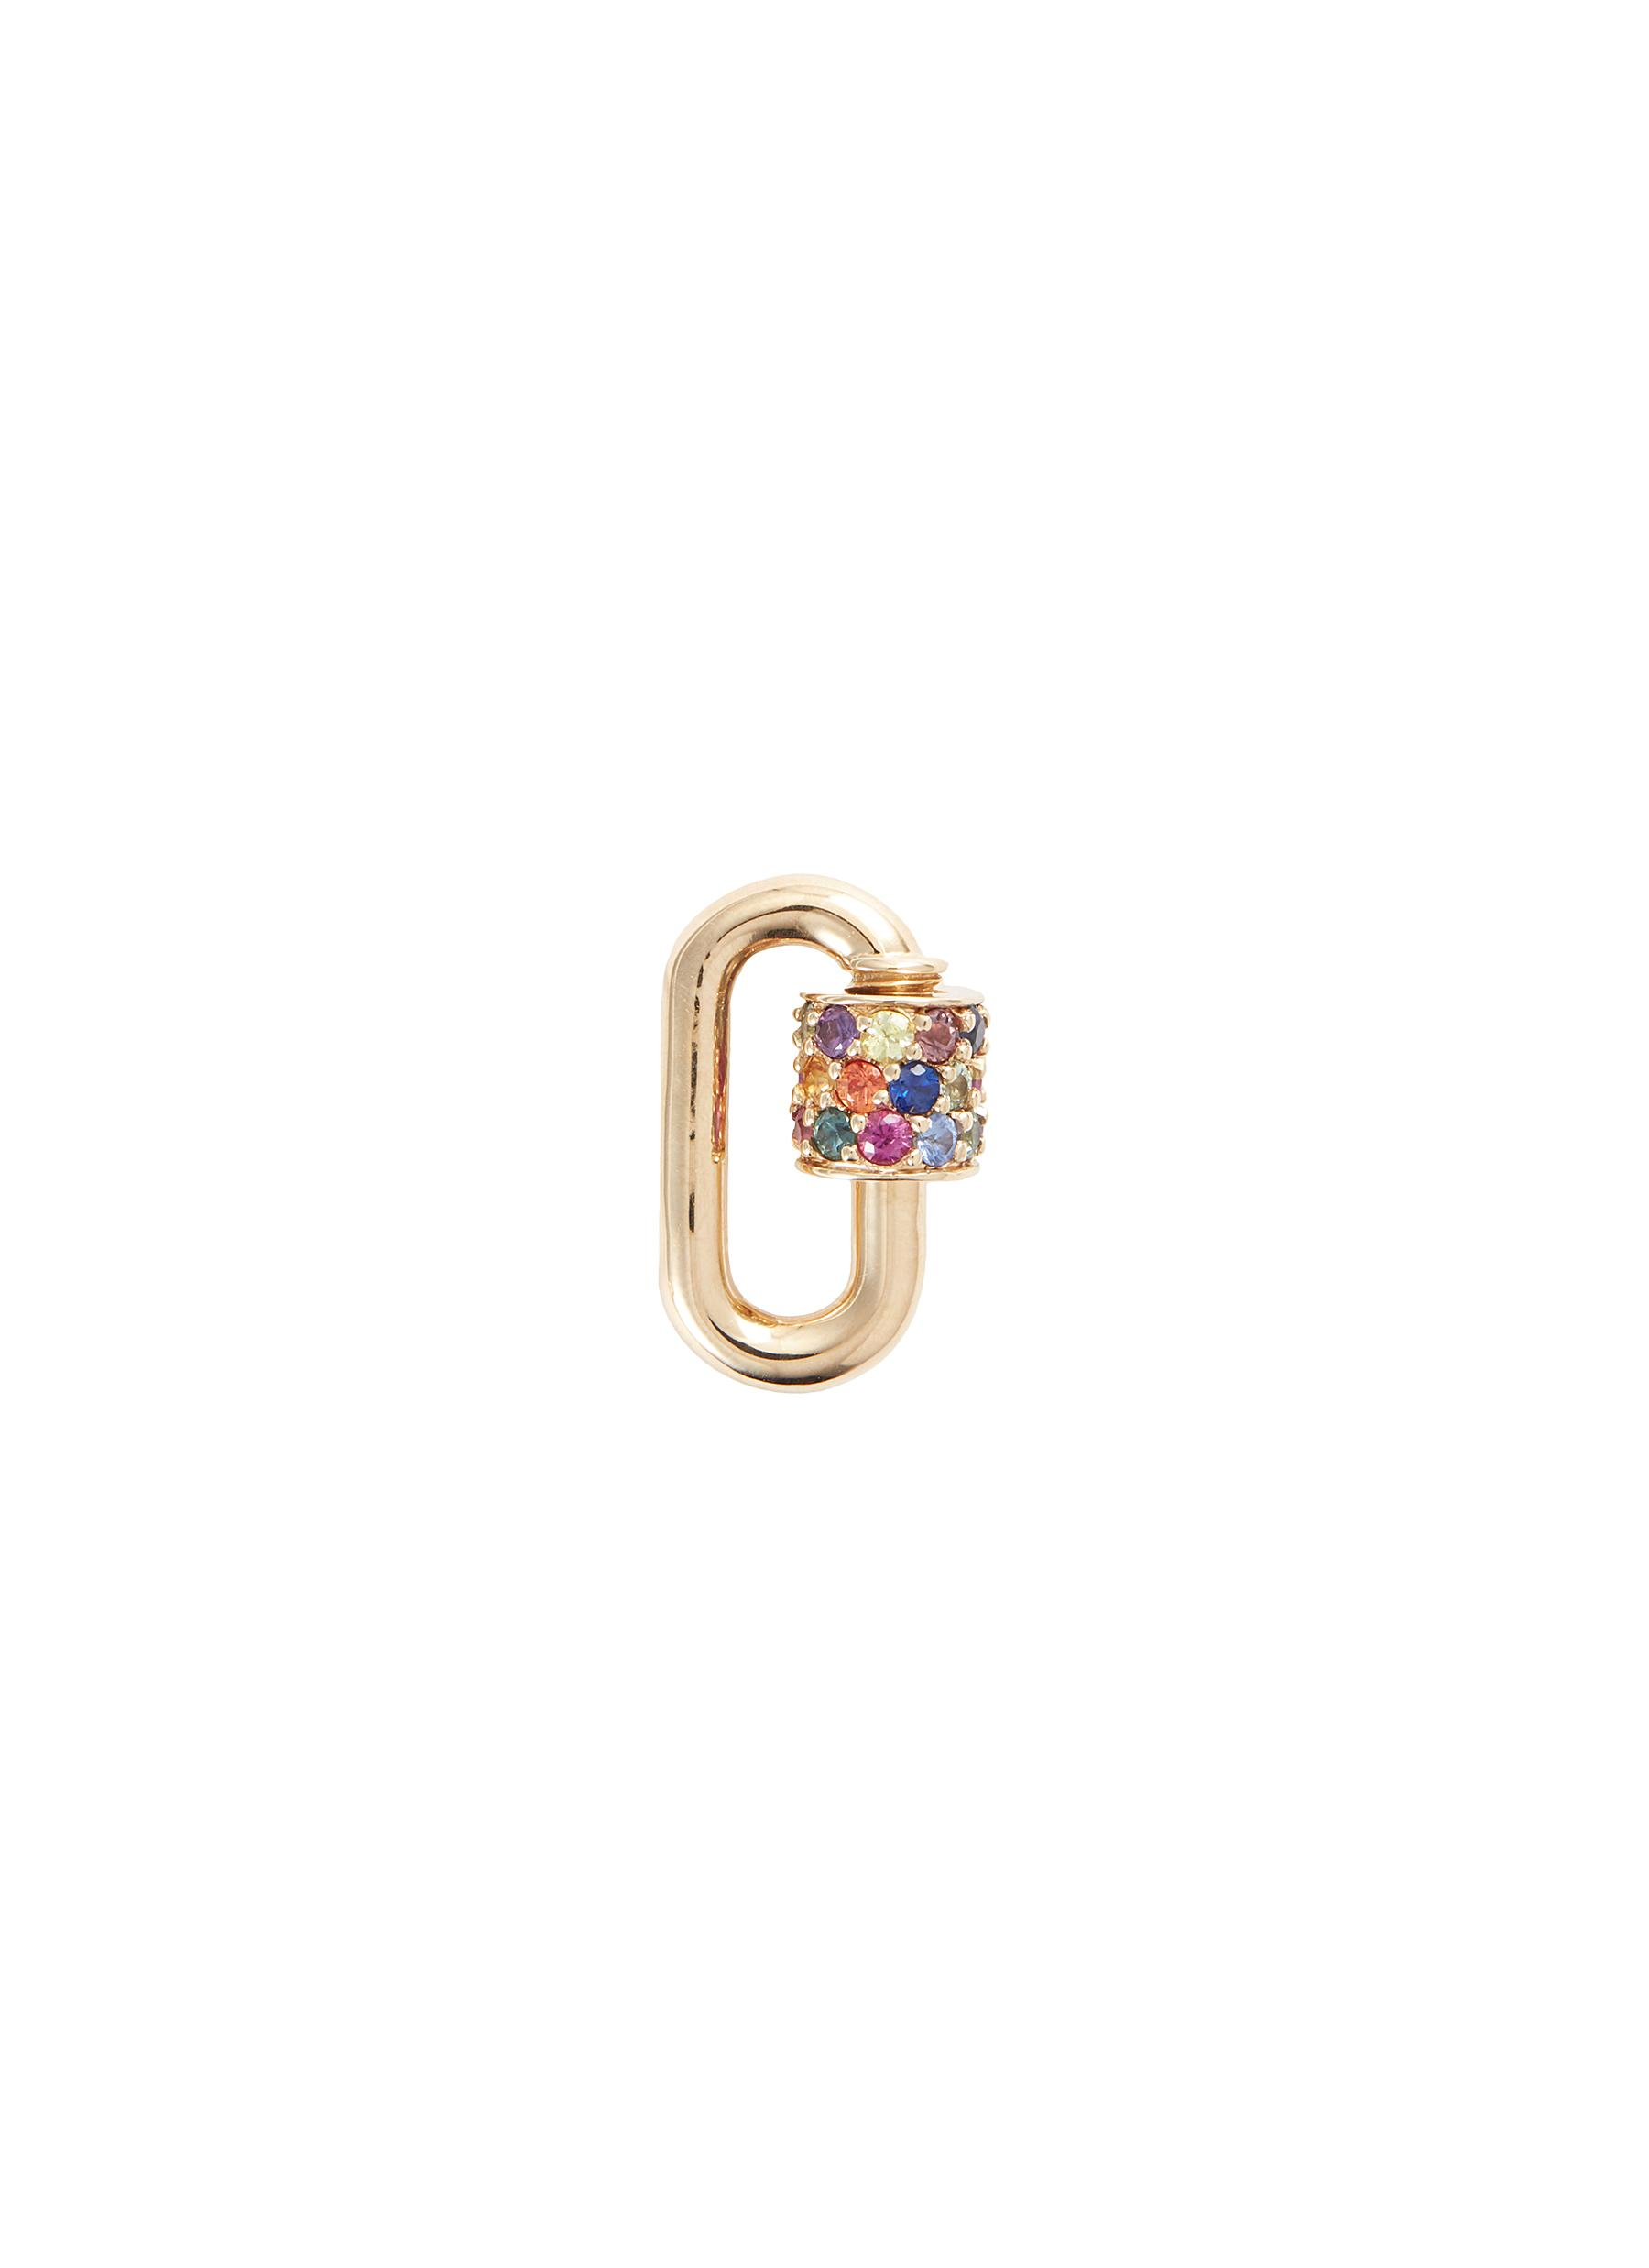 Mixed sapphire 14k yellow gold baguette chubby baby lock